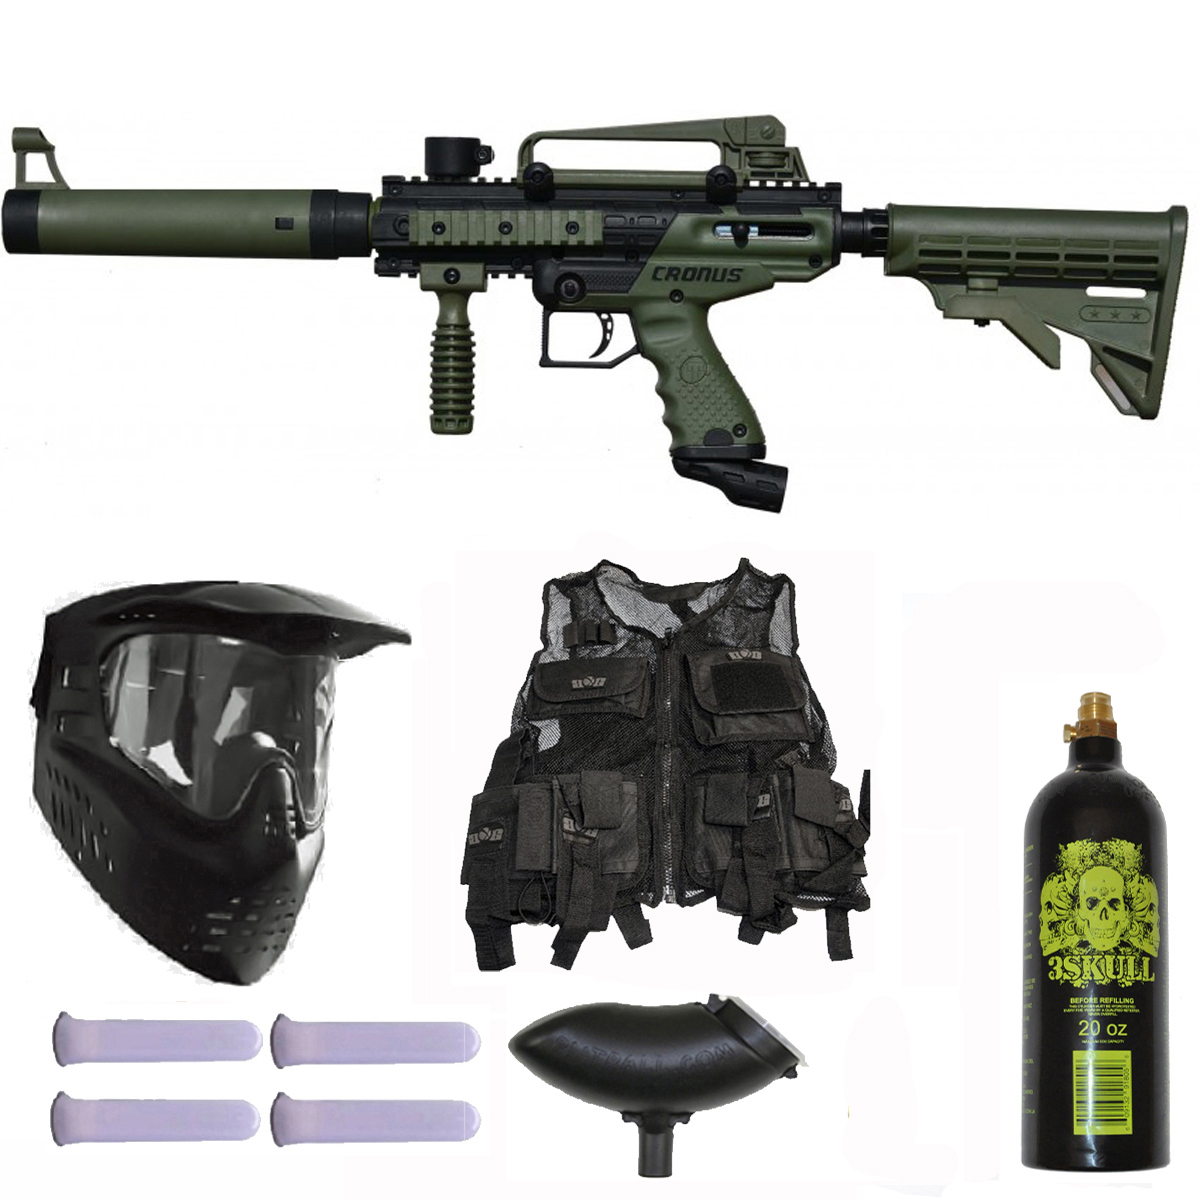 Tippmann Cronus Tactical Paintball Gun 3Skull Vest Mega Set Olive by